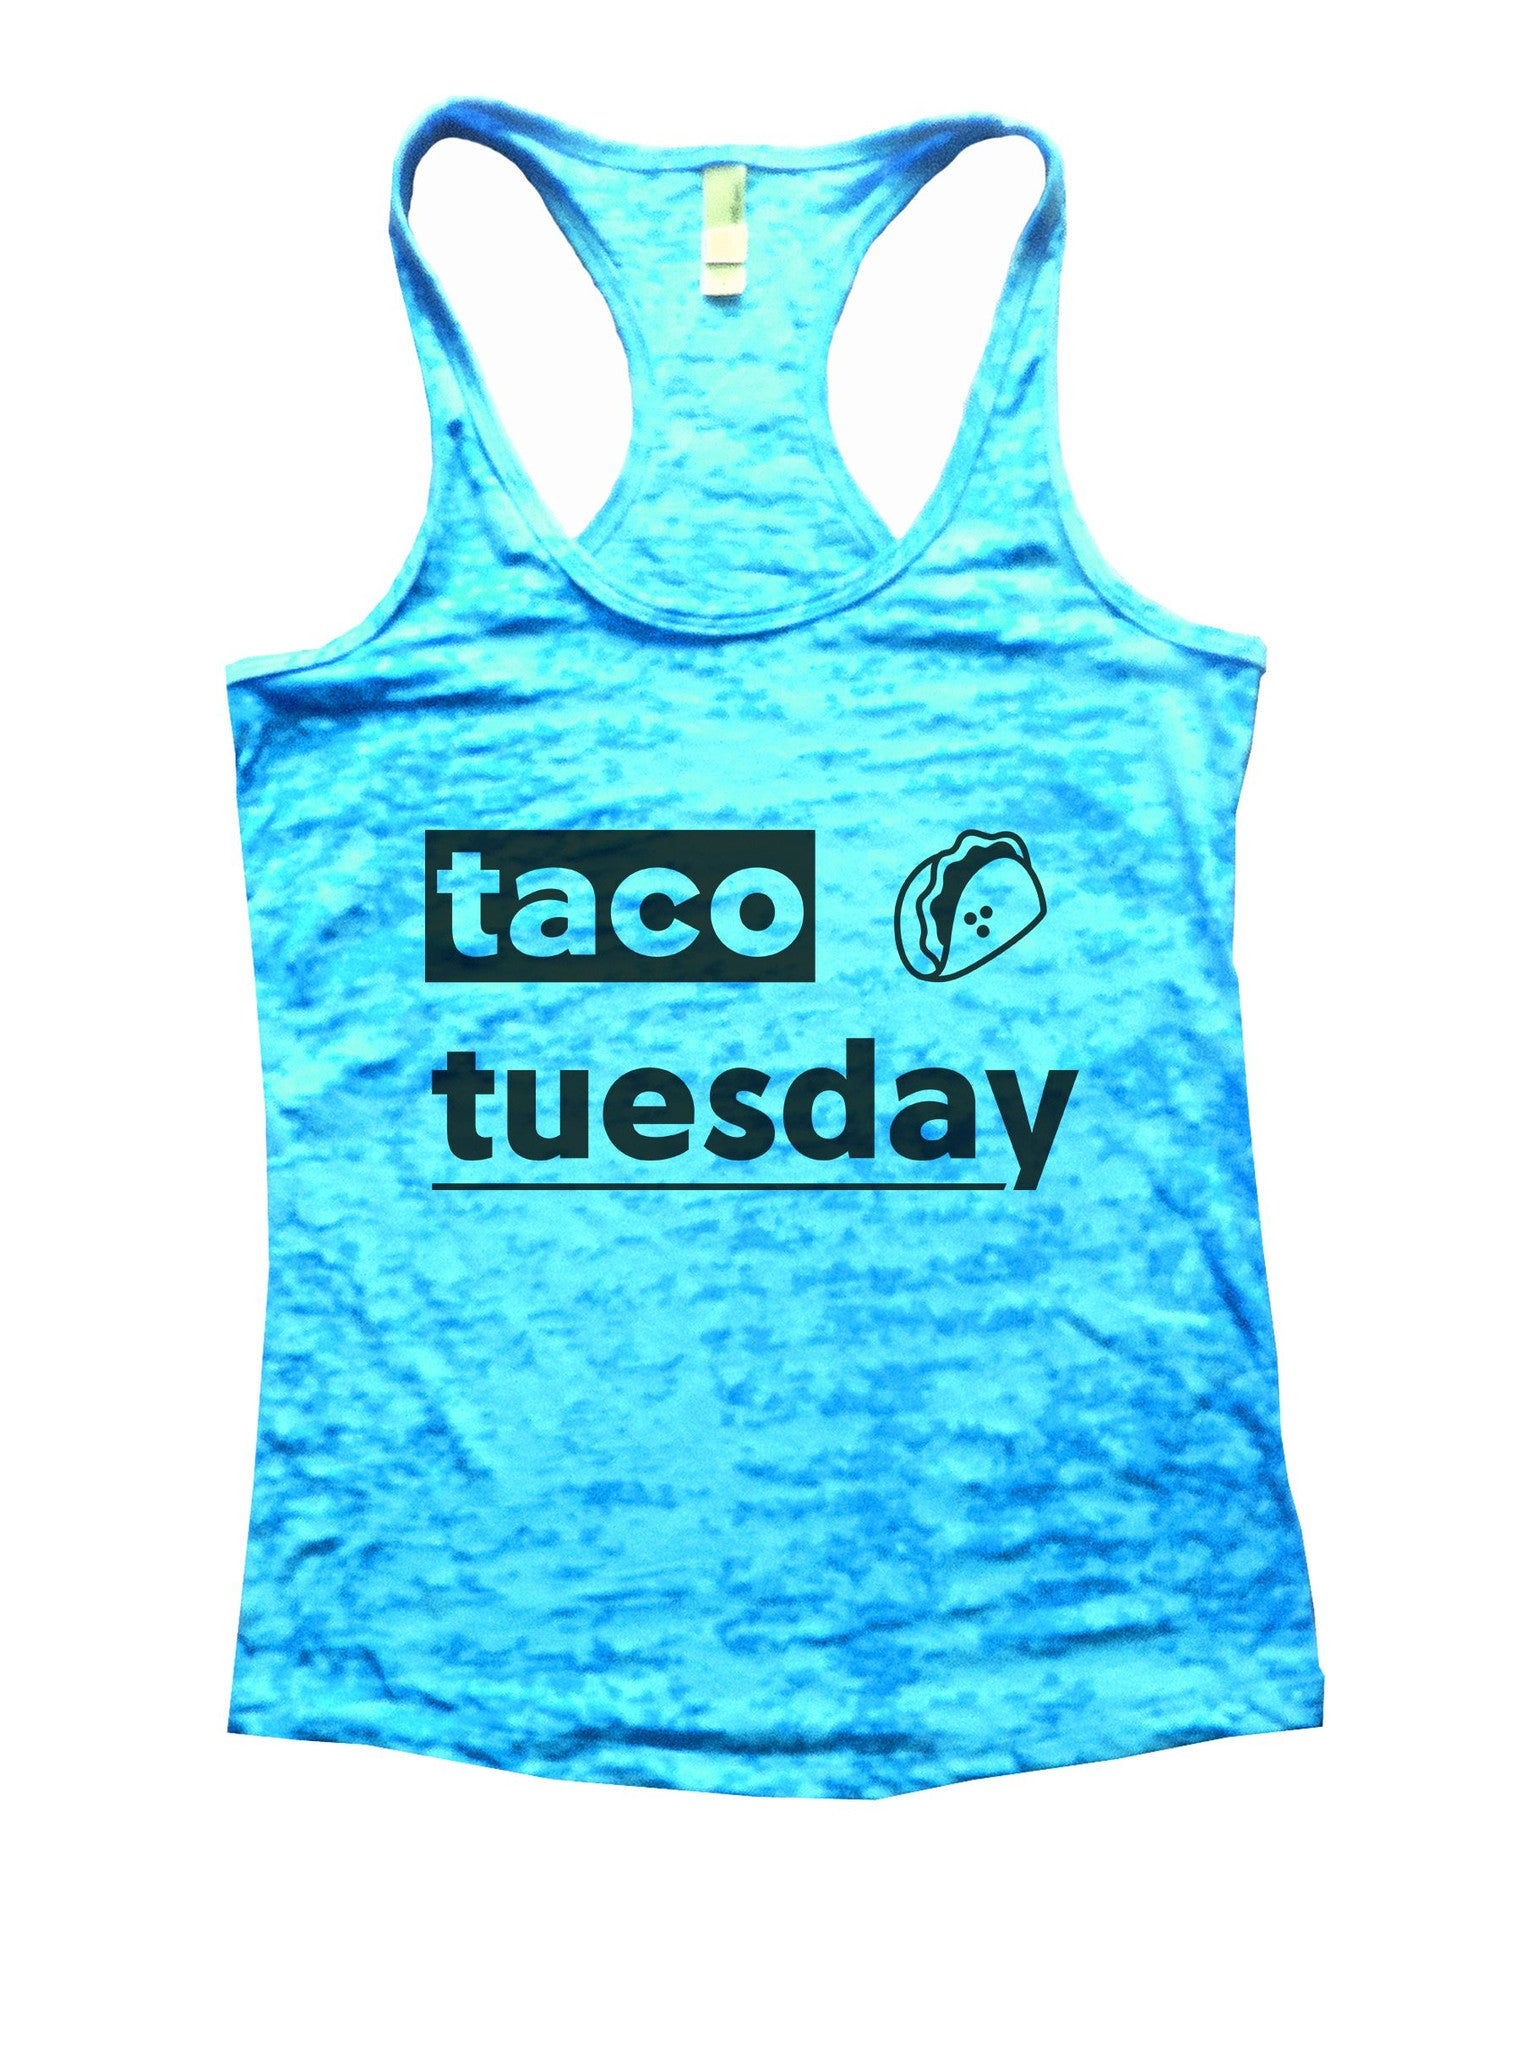 Taco Tuesday Burnout Tank Top By BurnoutTankTops.com - 1084 - Funny Shirts Tank Tops Burnouts and Triblends  - 4